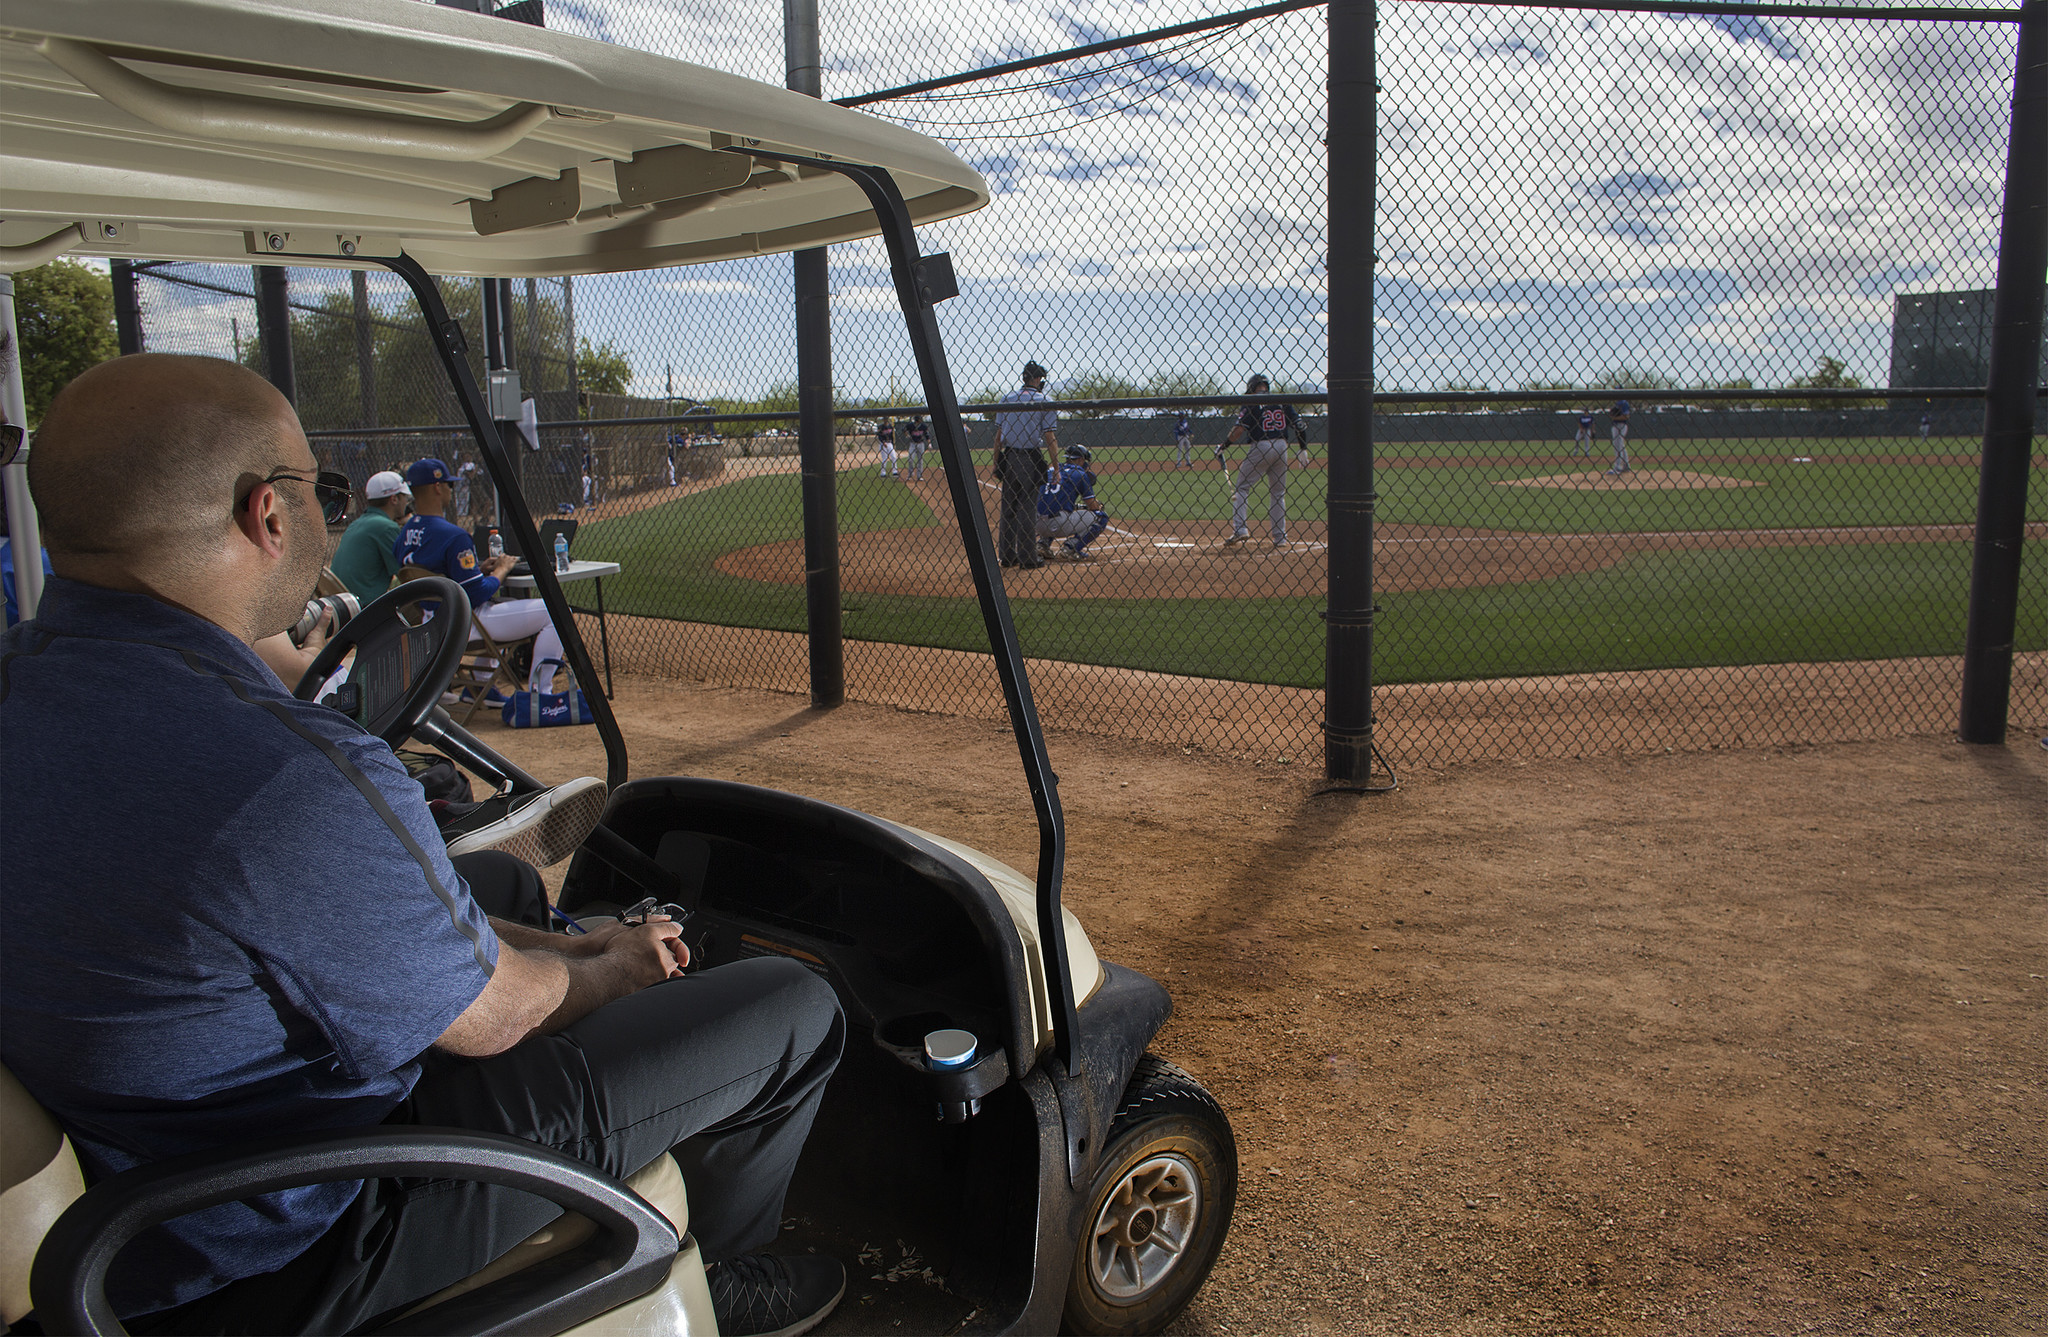 Farhan Zaidi watches a minor league game during spring training at Camelback Ranch. Early in his career with the Oakland Athletics he realized went to numerous minor league and amateur games to develop his eye for baseball talent.